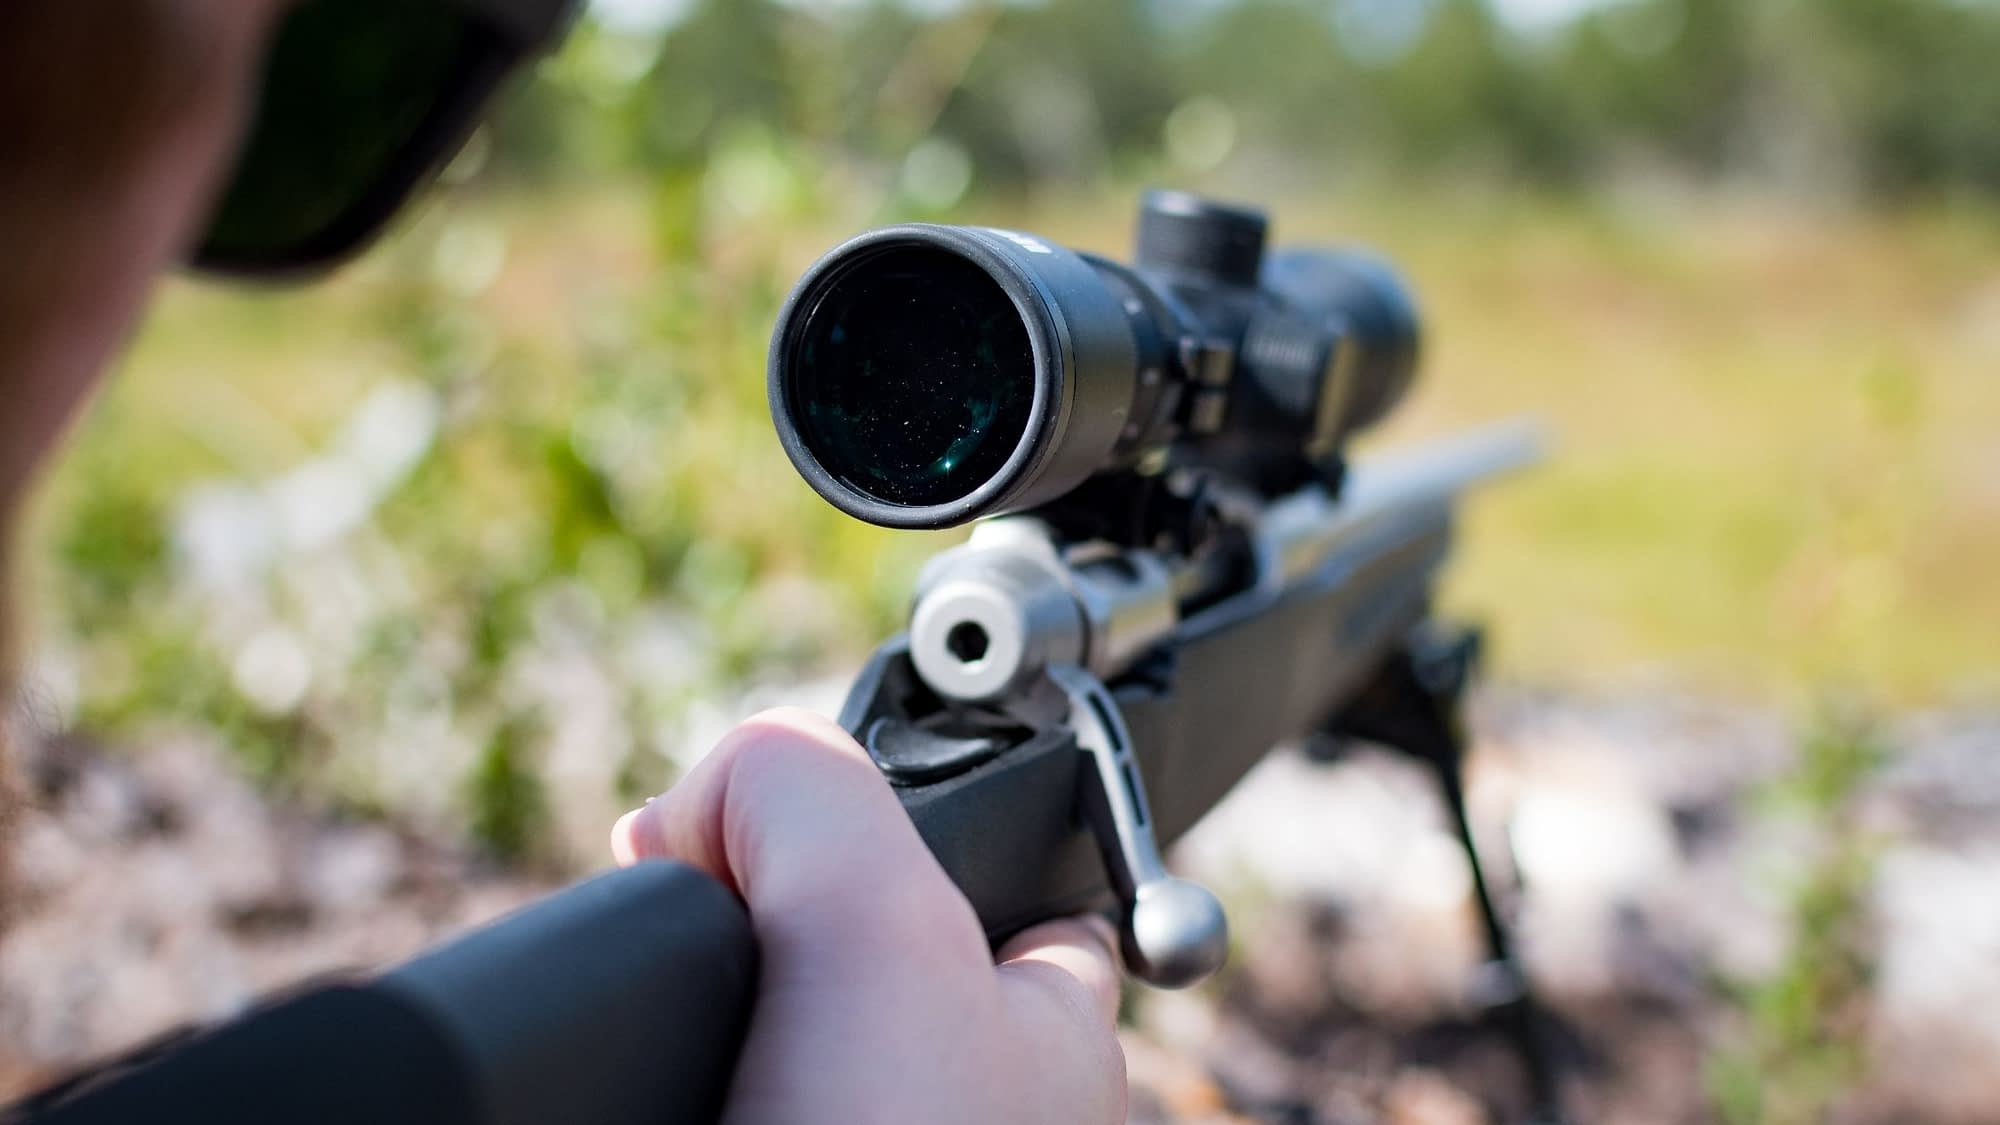 How to sight a rifle